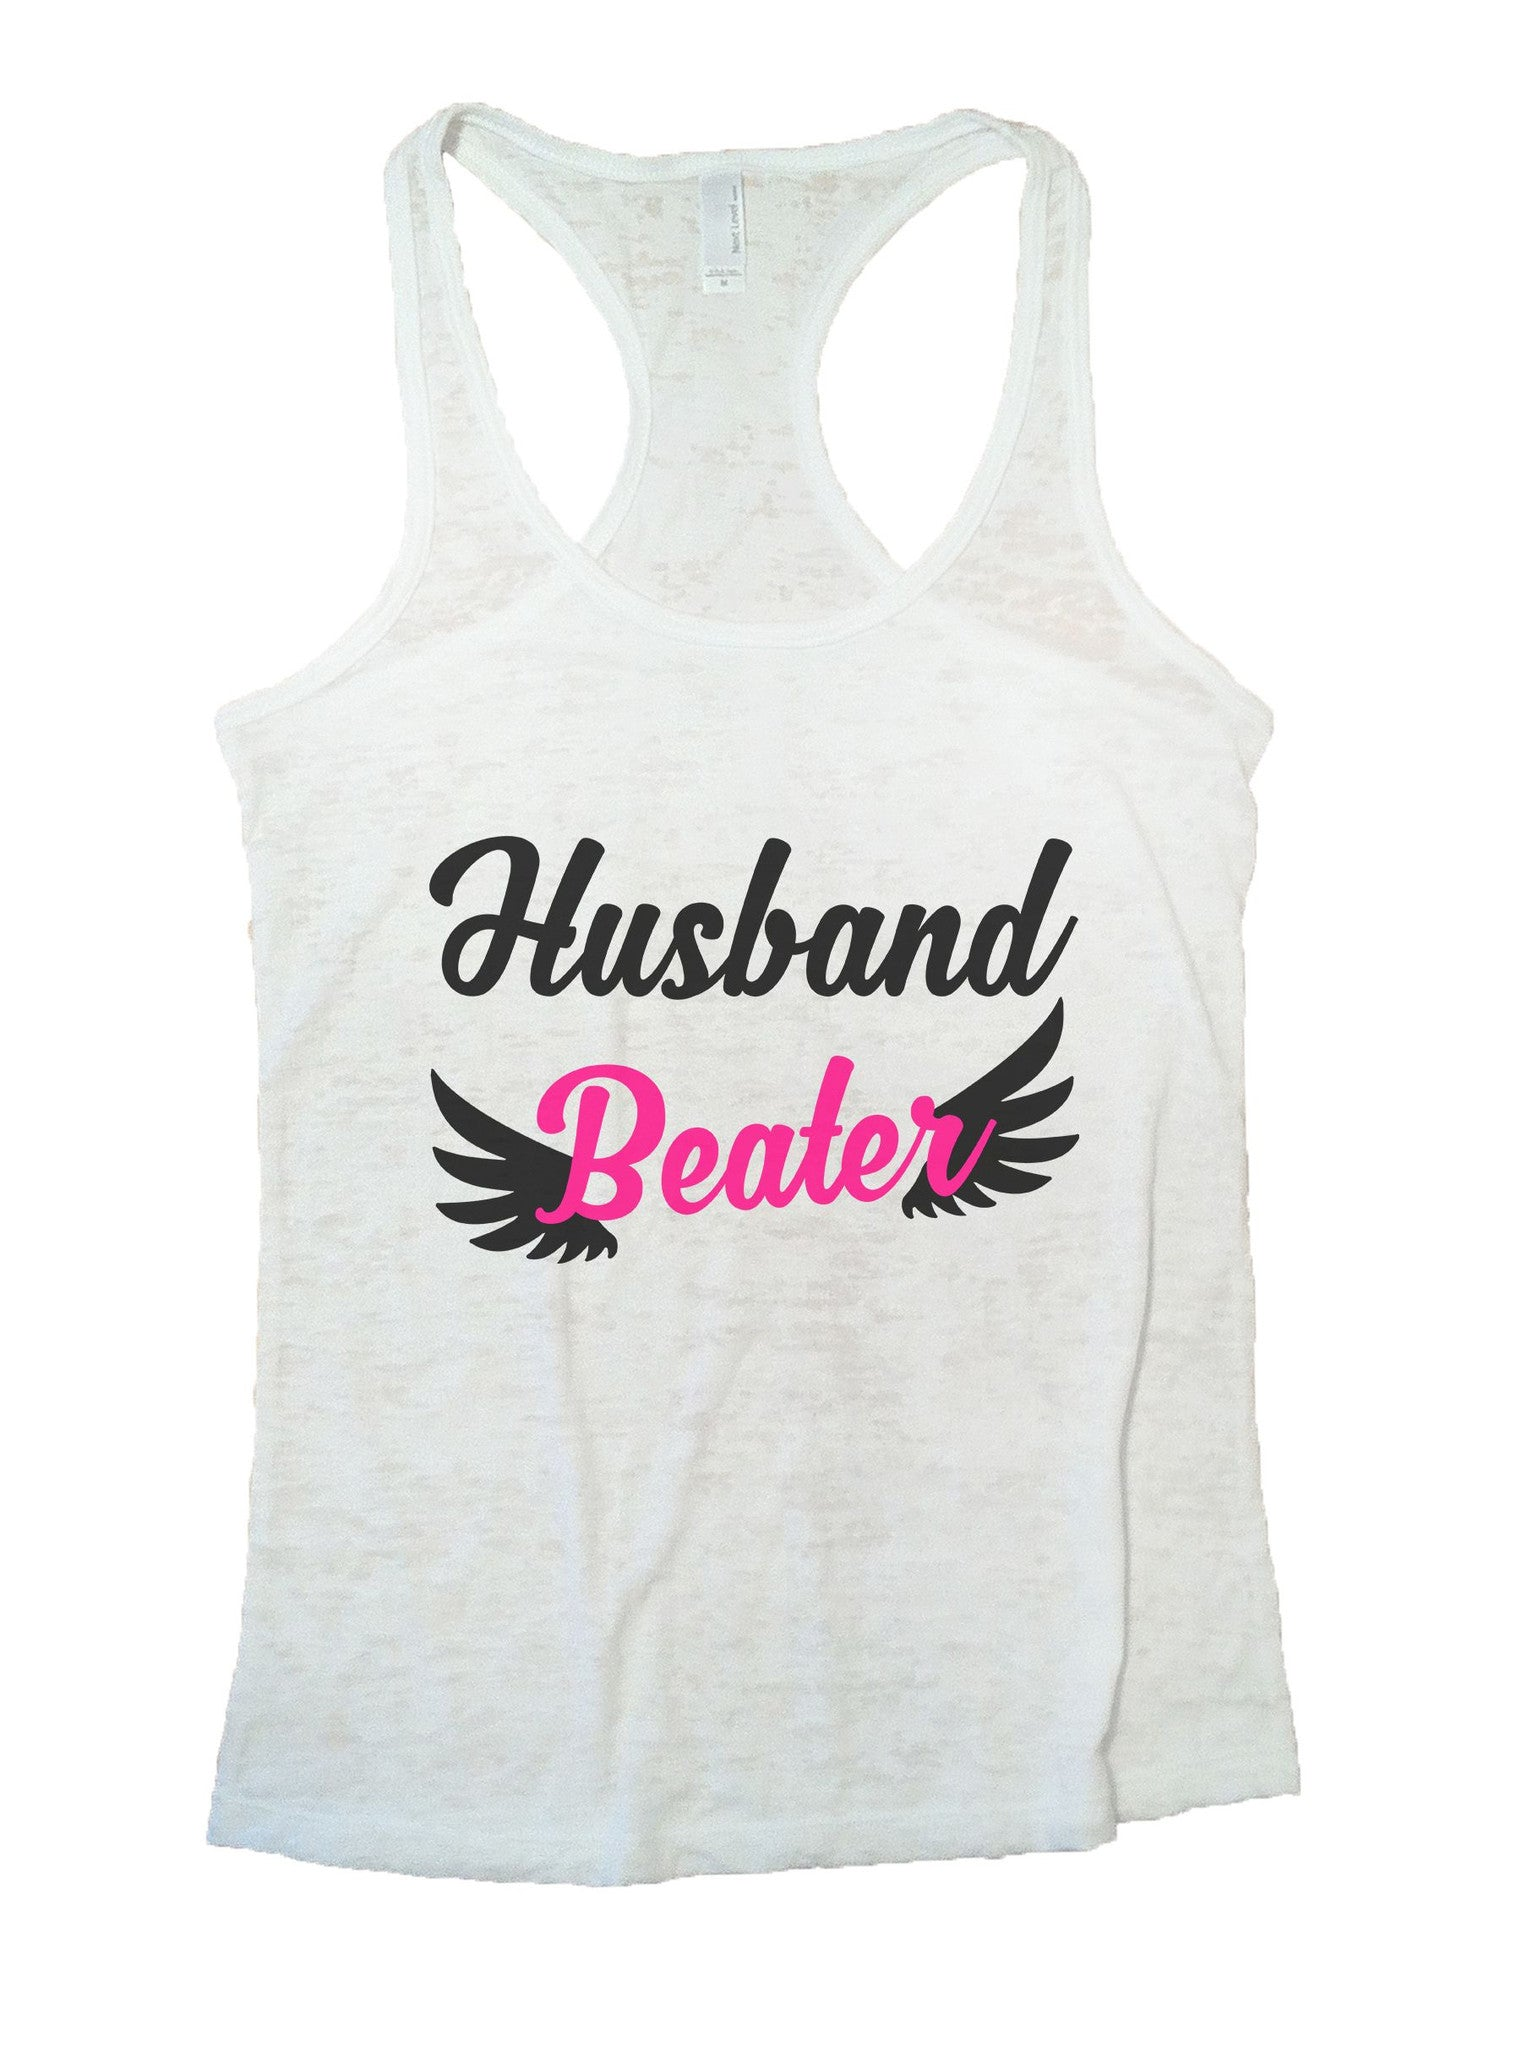 Husband Beater Burnout Tank Top By BurnoutTankTops.com - 1067 - Funny Shirts Tank Tops Burnouts and Triblends  - 6